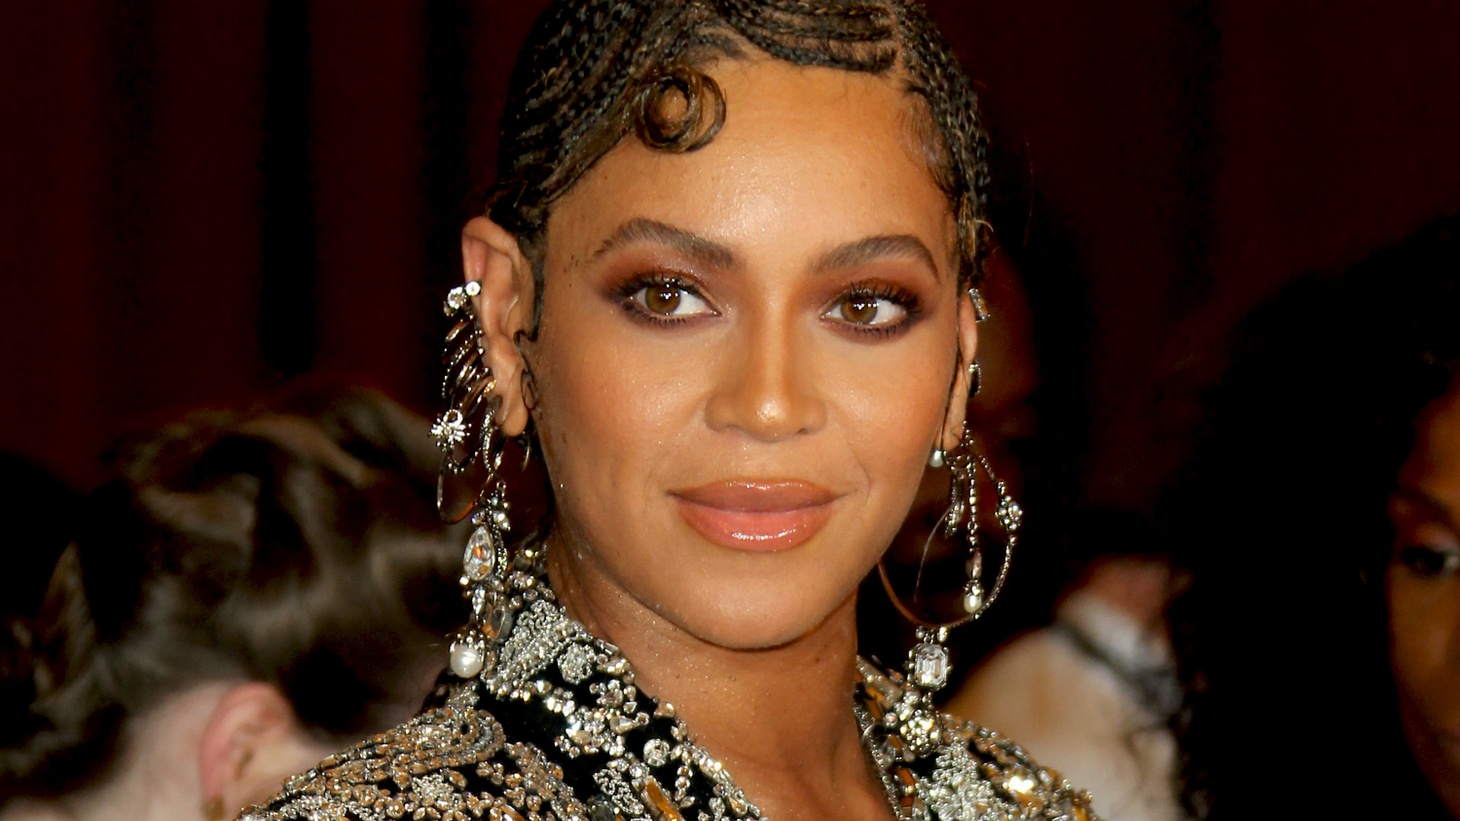 """Beyonce at the world premiere of Disney's """"The Lion King"""" at Dolby Theatre in Hollywood, California, July 10, 2019. Beyonce's new visual album, """"Black Is King,"""" was inspired by """"The Lion King."""""""